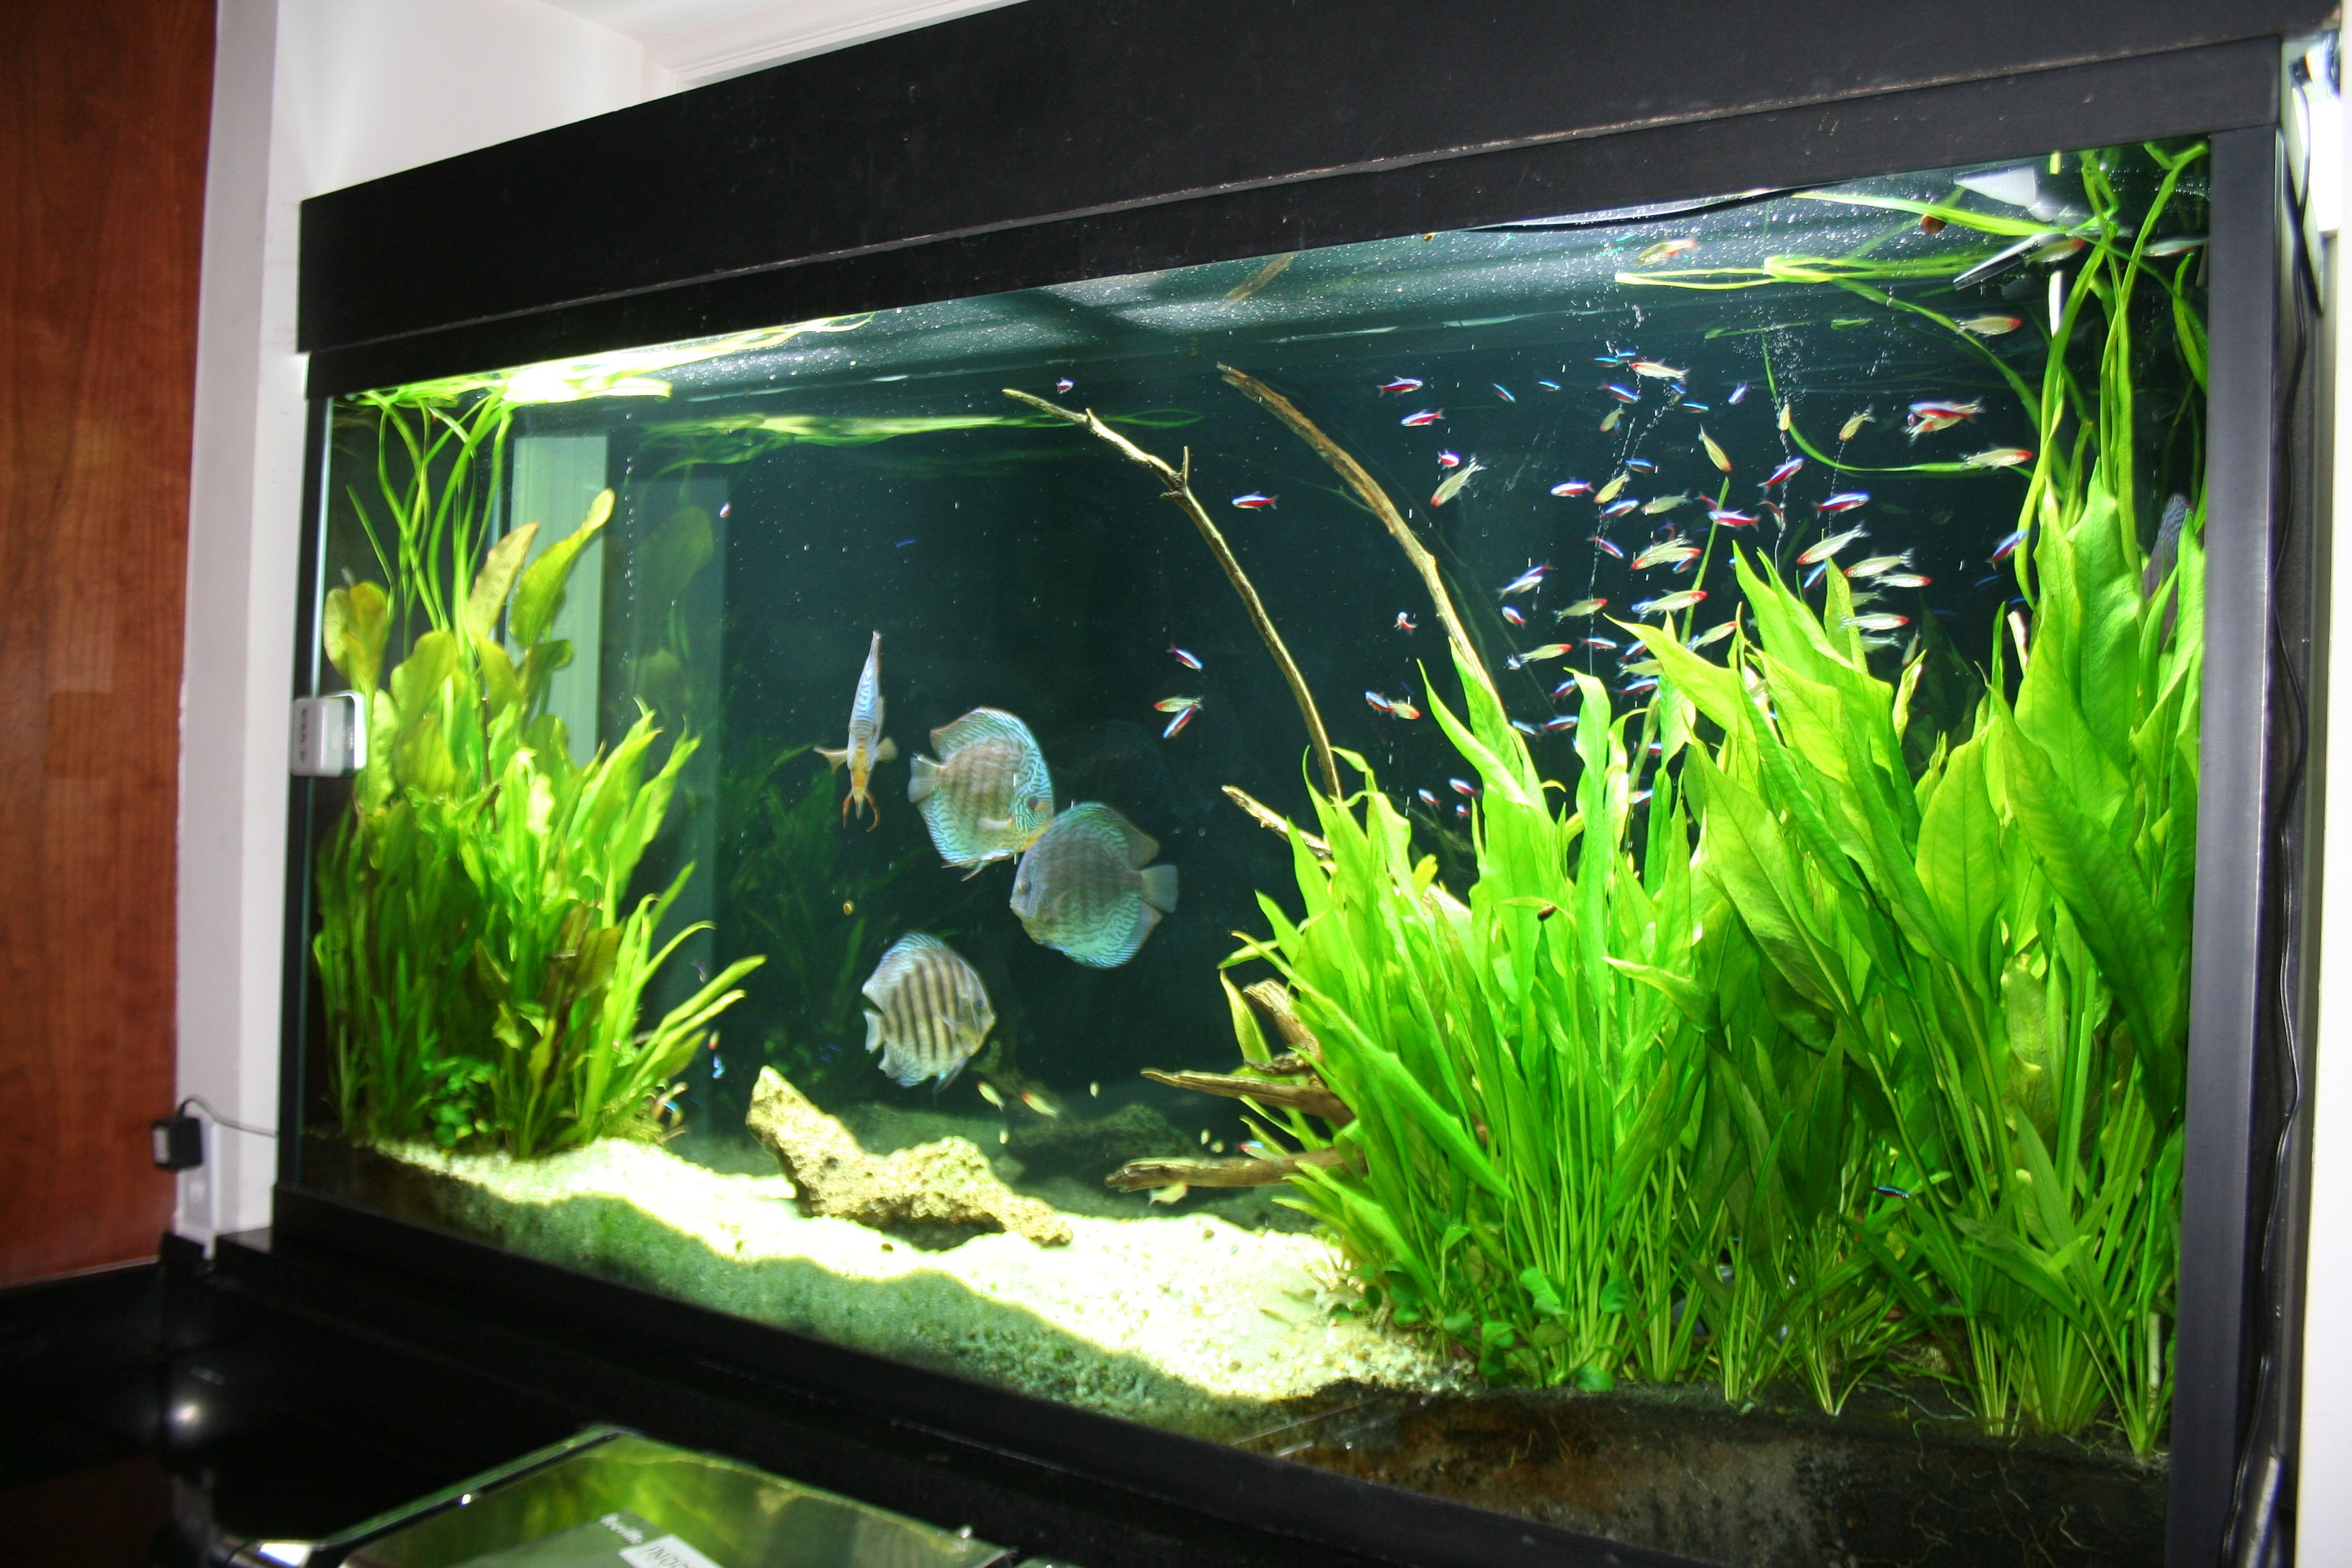 Freshwater aquarium fish from asia - Freshwater Planted Fish Tanks Google Search